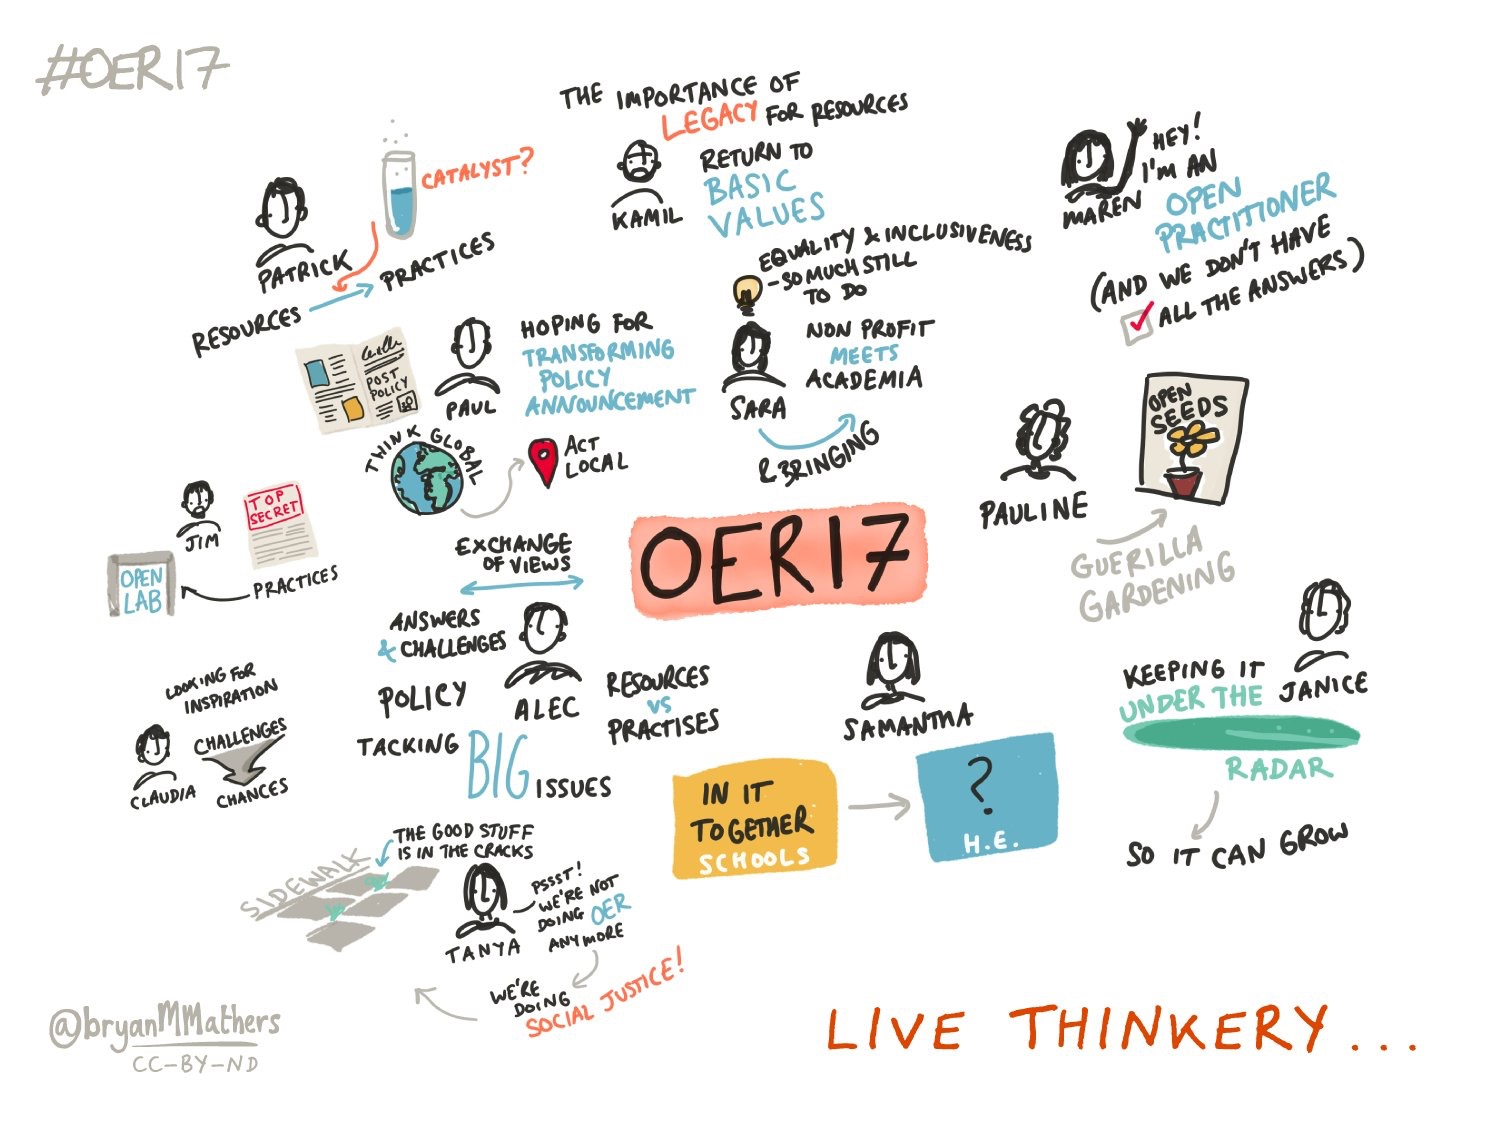 Live visual thinkery by @BryanMMathers CC-BY-ND